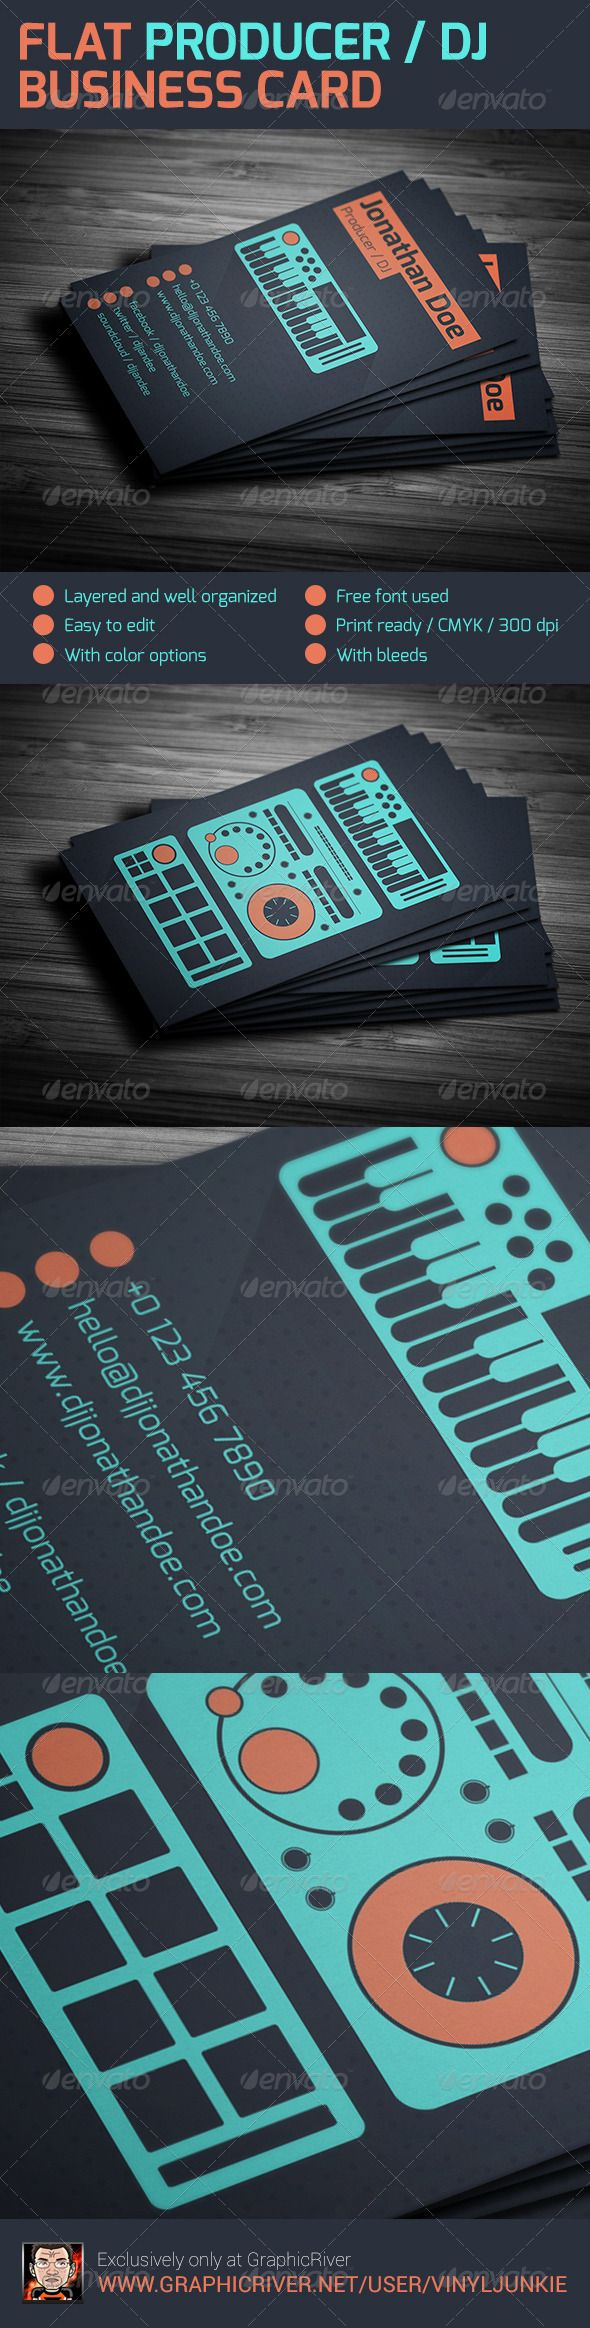 Flat producer dj business card dj business cards business cards flat producer dj business card by vinyljunkie business card template for professional dj and producers fbccfo Choice Image